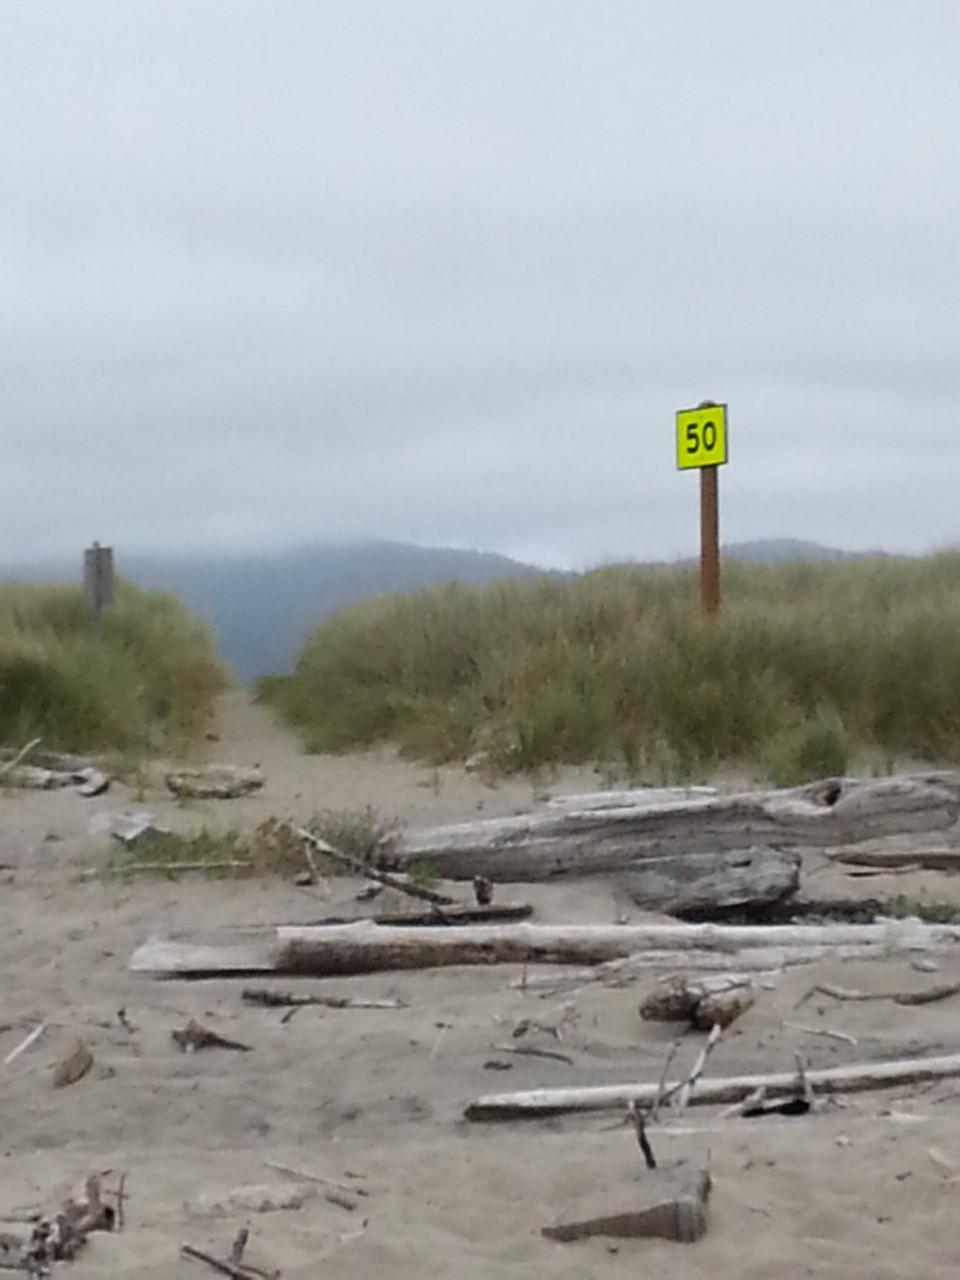 One of the new emergency location signs posted at a beach access.  I don't know why they didn't coordinate these numbers with the Highway 101 mileage signs ... but they didn't ask my opinion.